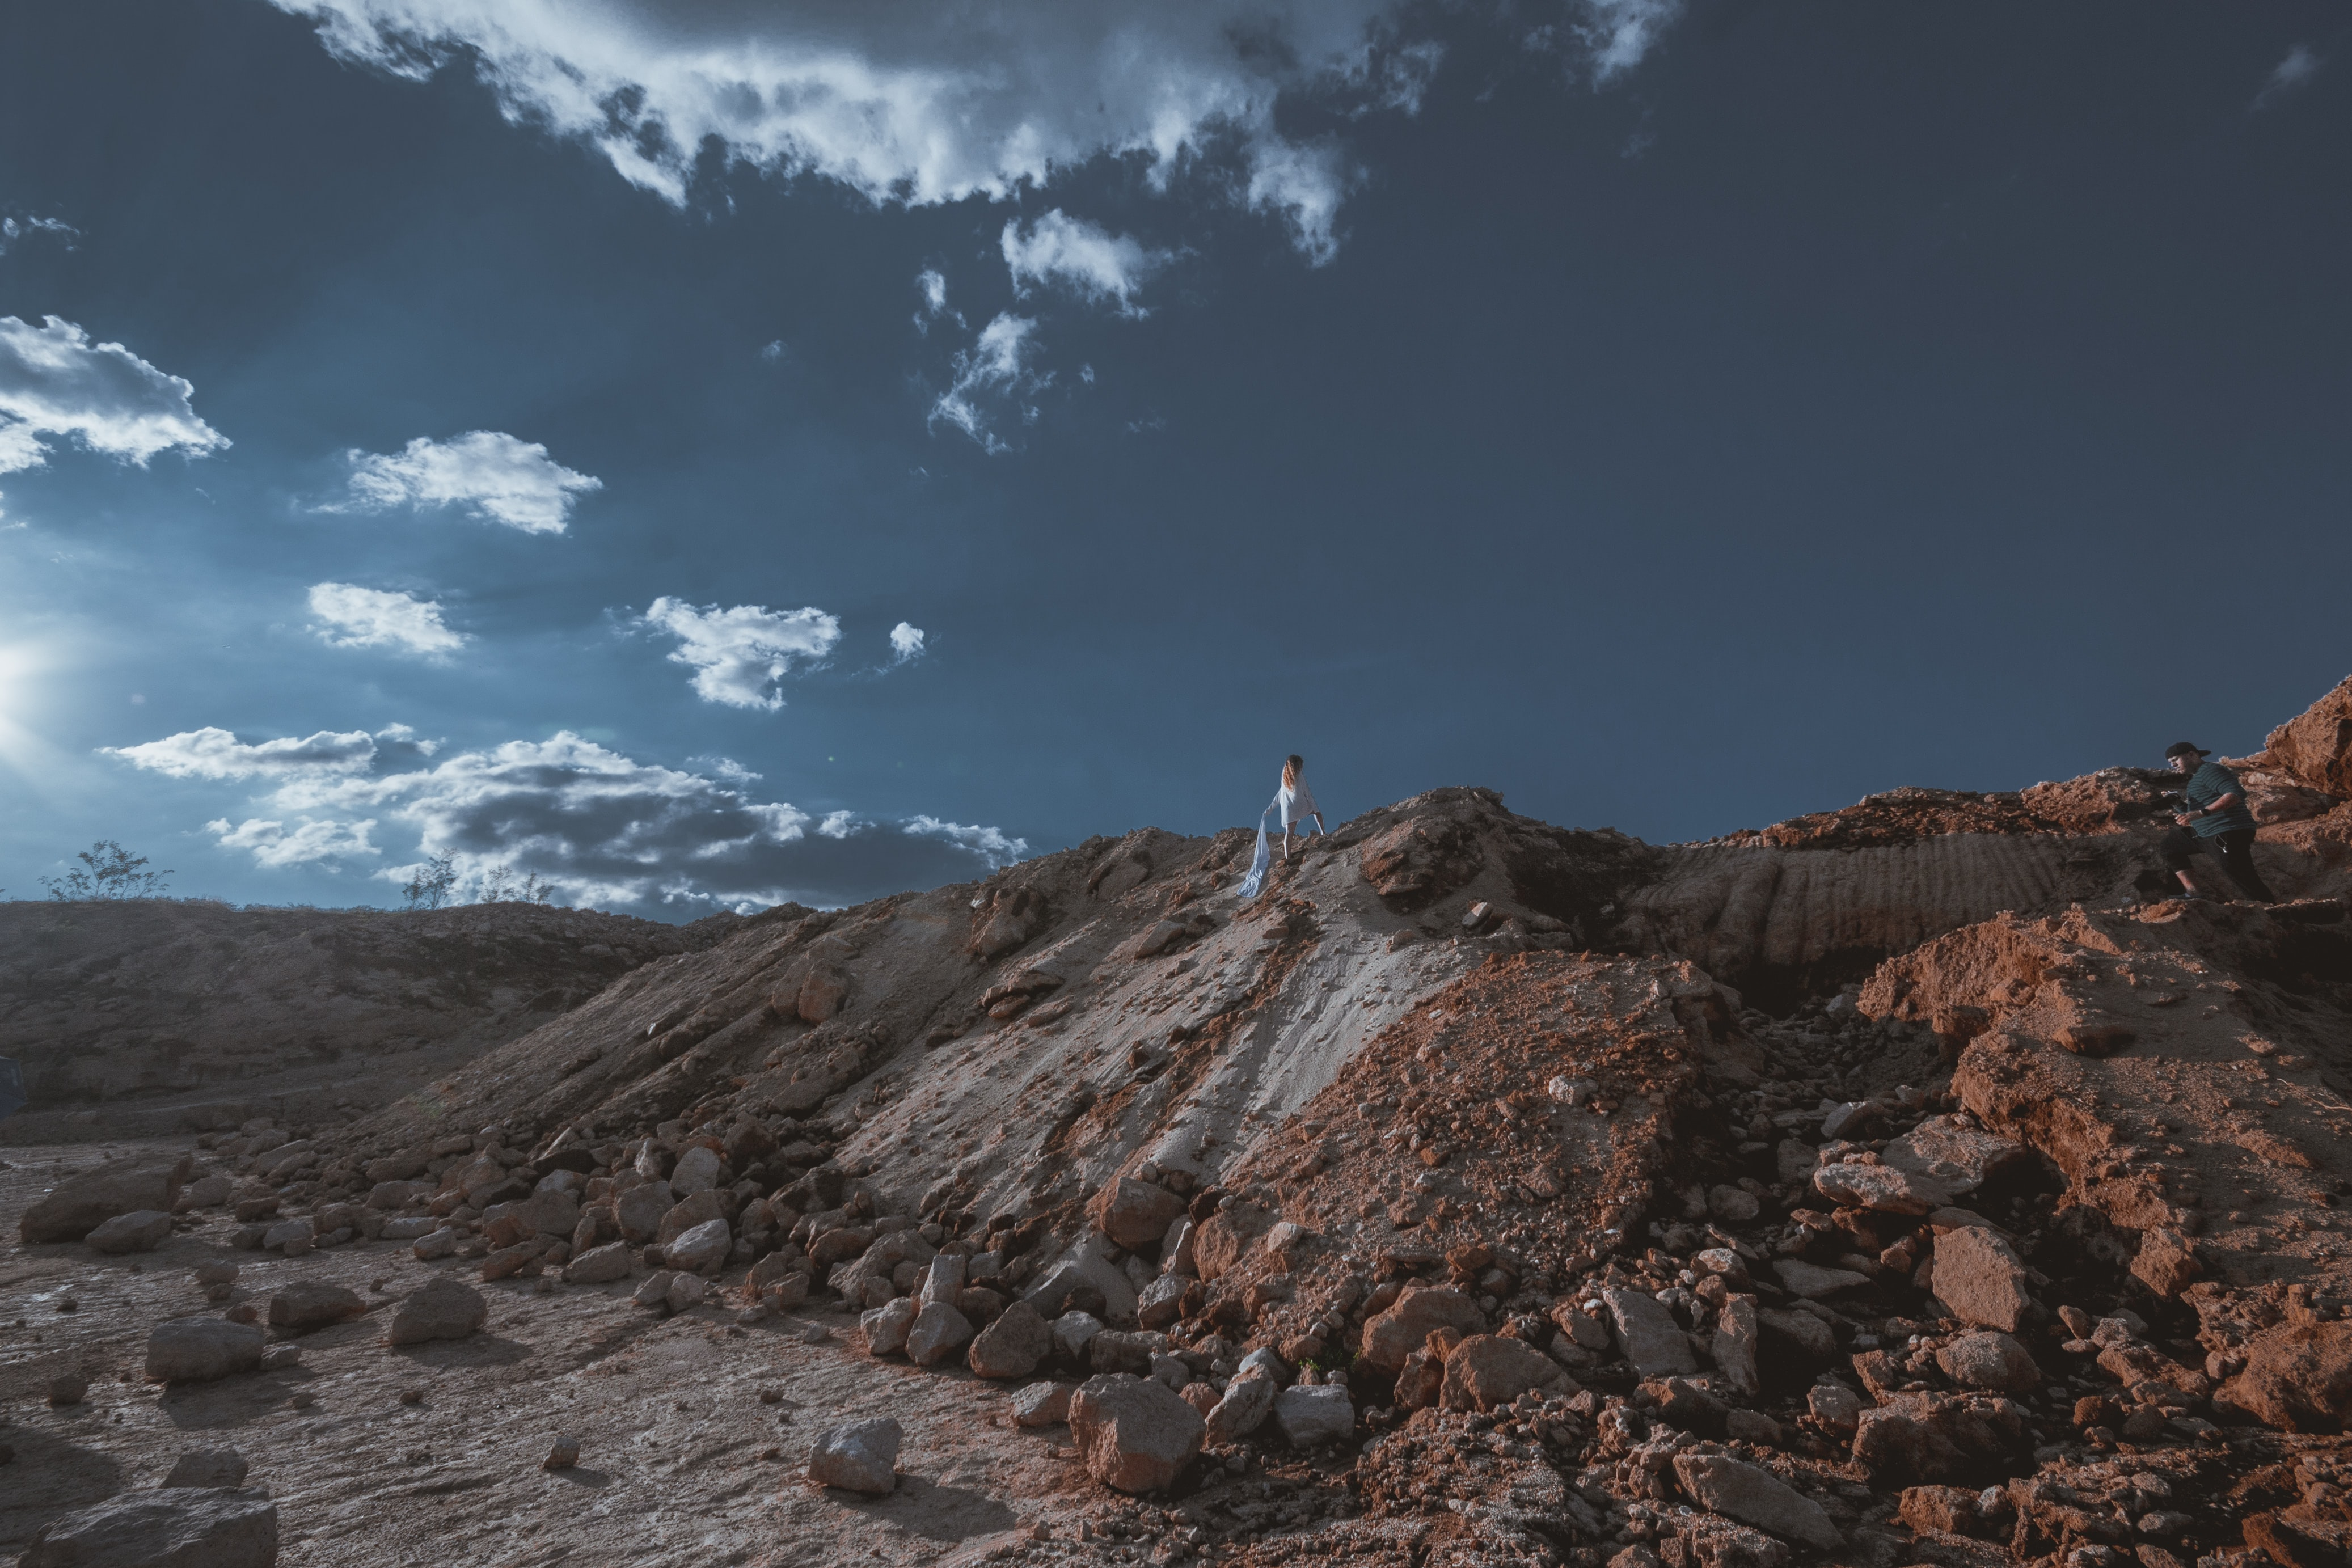 Person stands at the peak of a sandy mountain in the desert